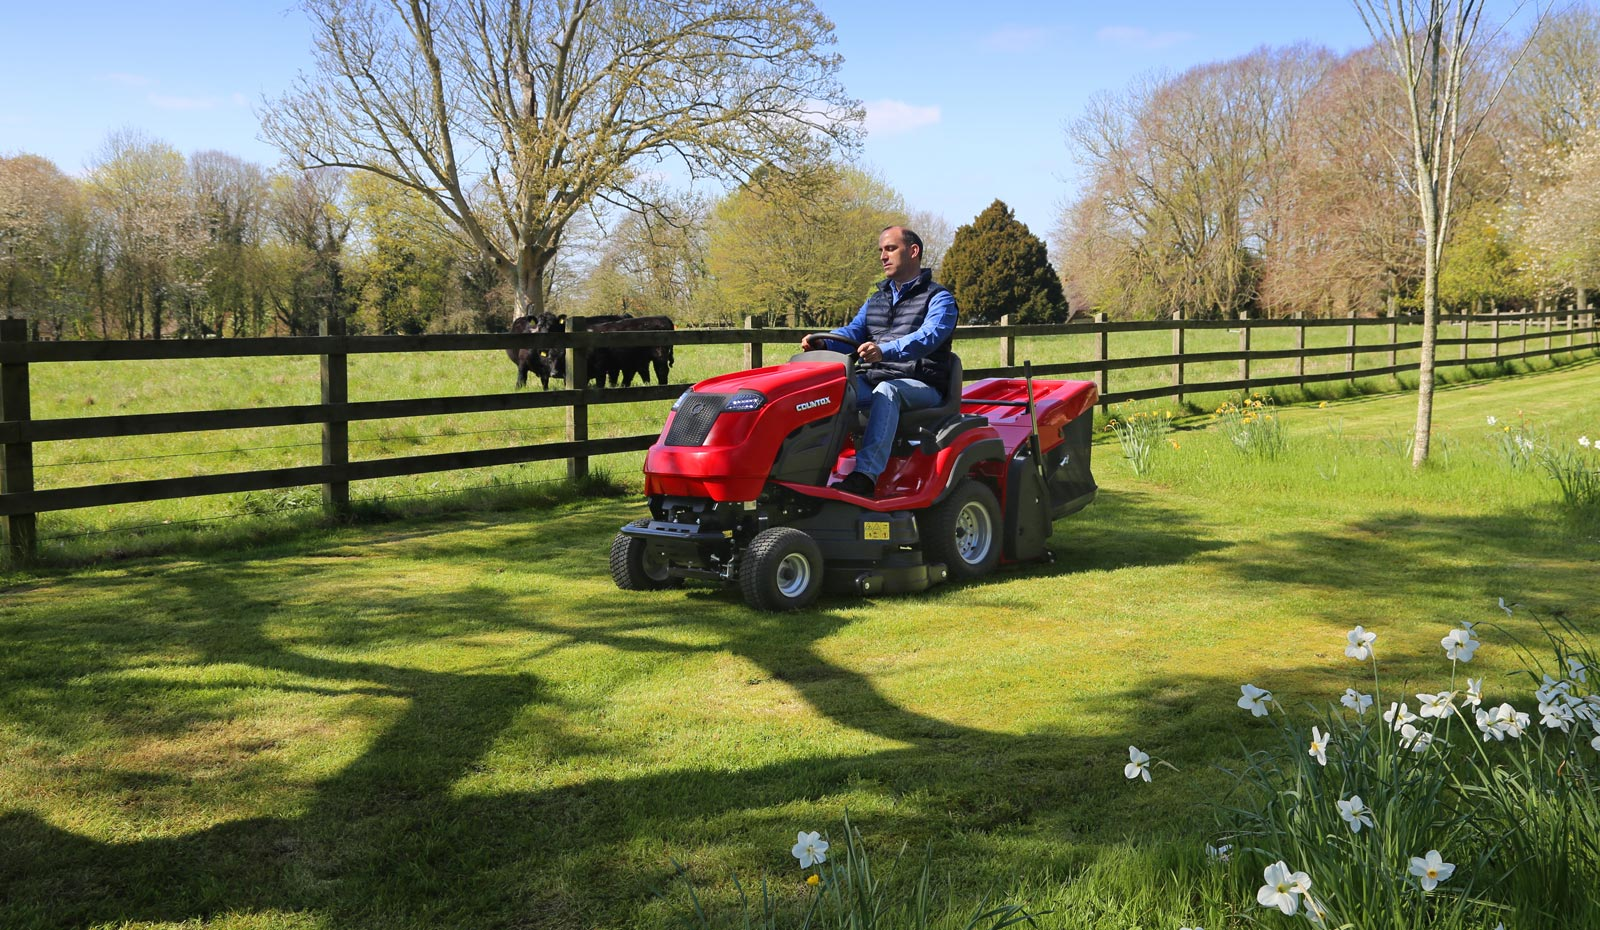 Countax C Series garden tractor with PGC+ cutting and collecting grass by daffodils in Spring